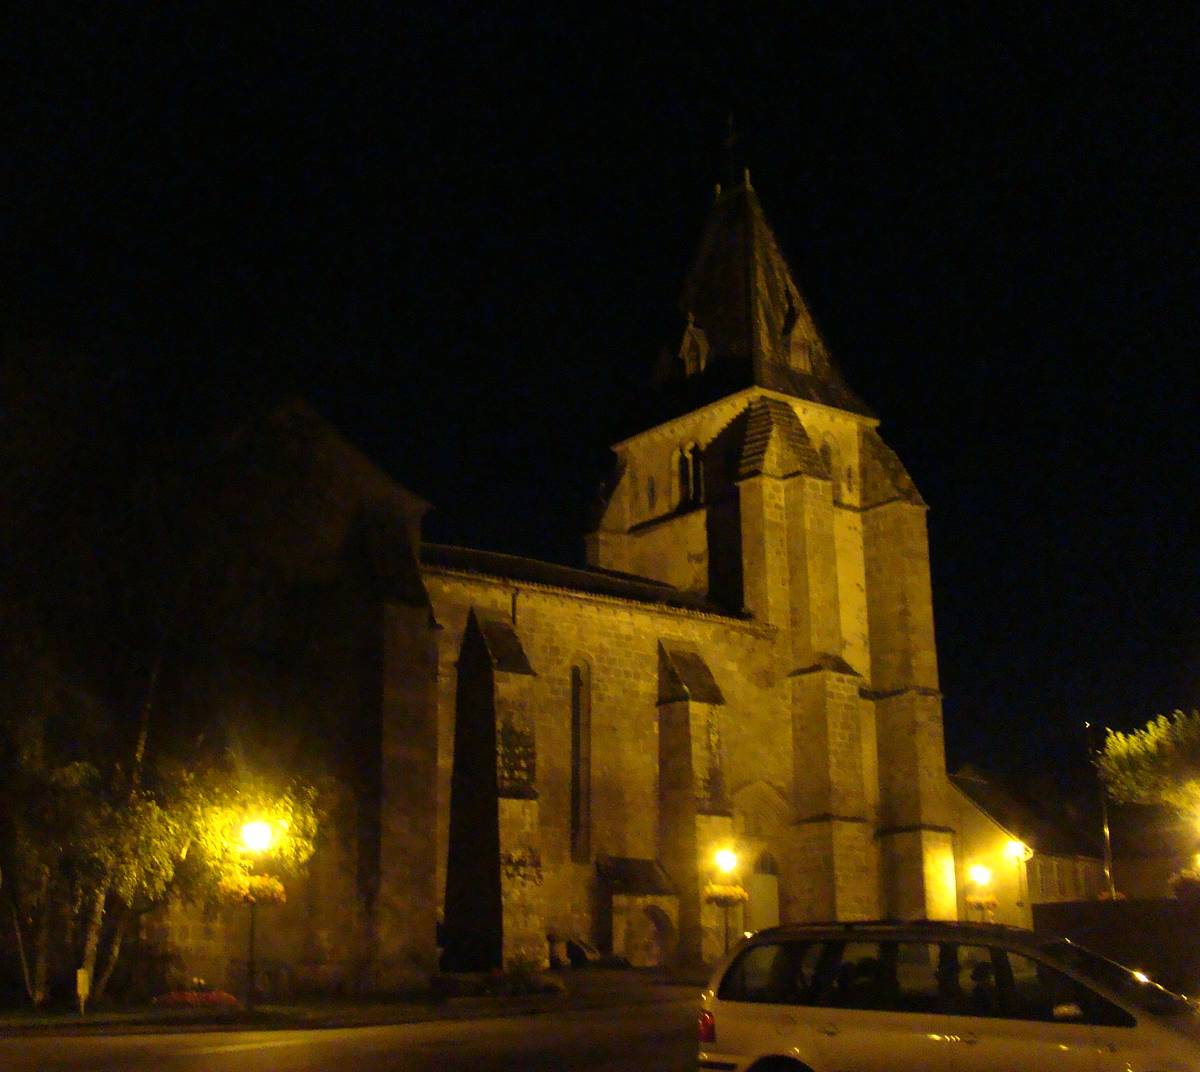 COLLEGIALE DU GRAND BOURG